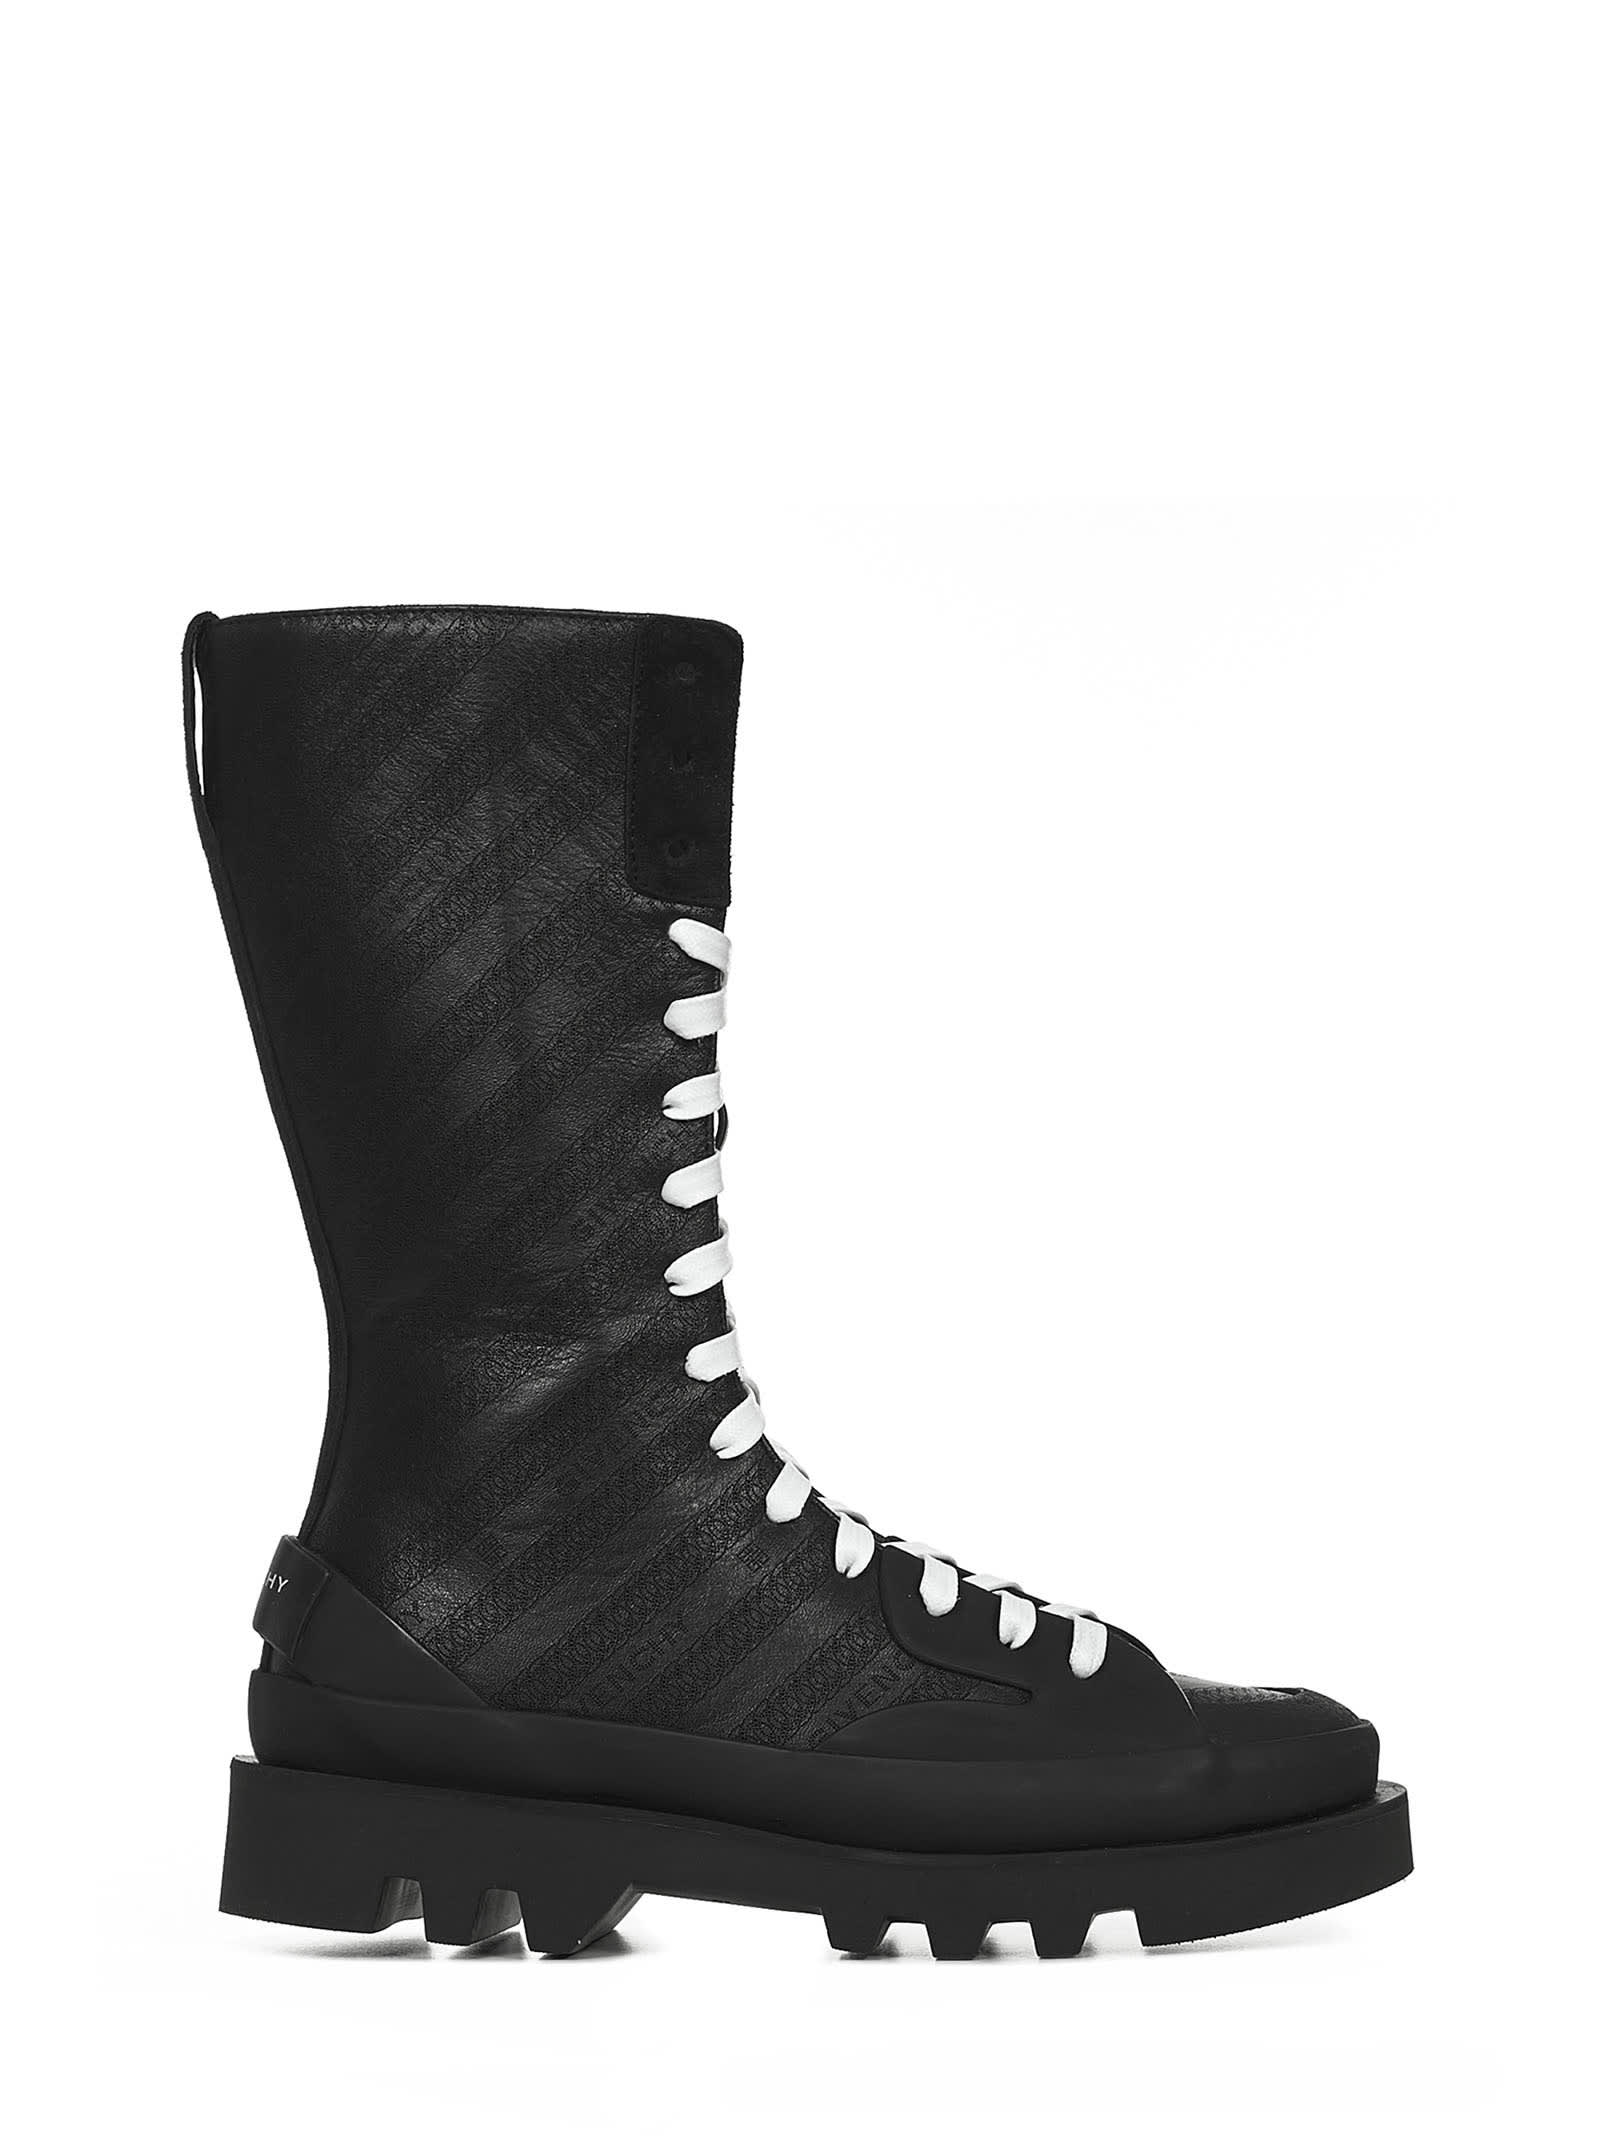 GIVENCHY CLAPHAM BOOTS